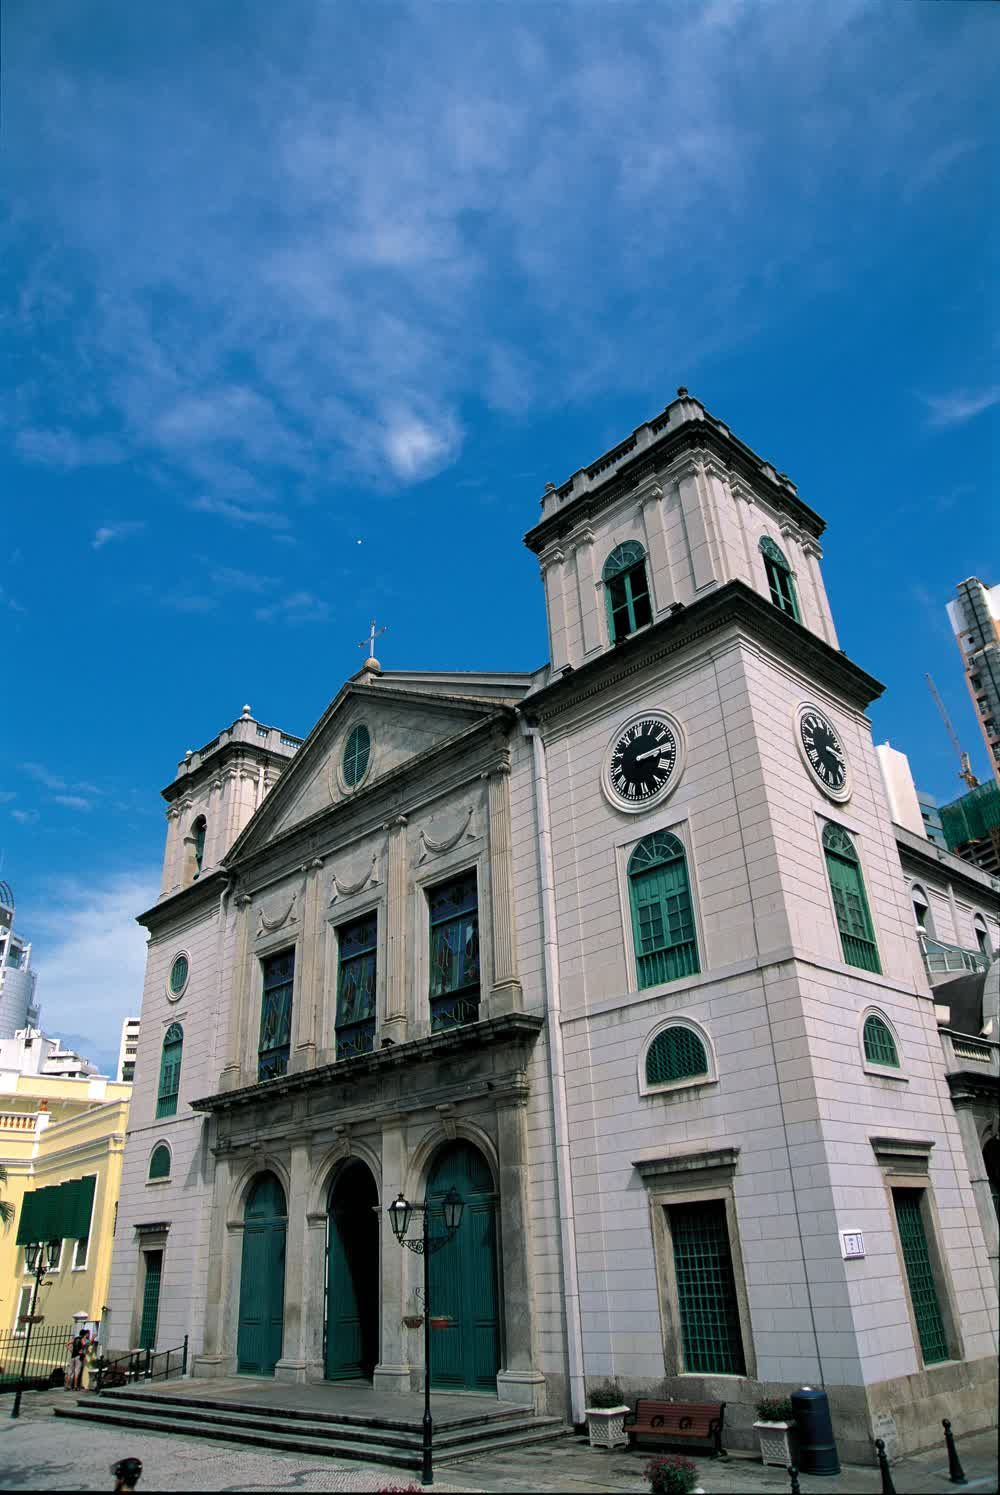 The cathedral church of Macau